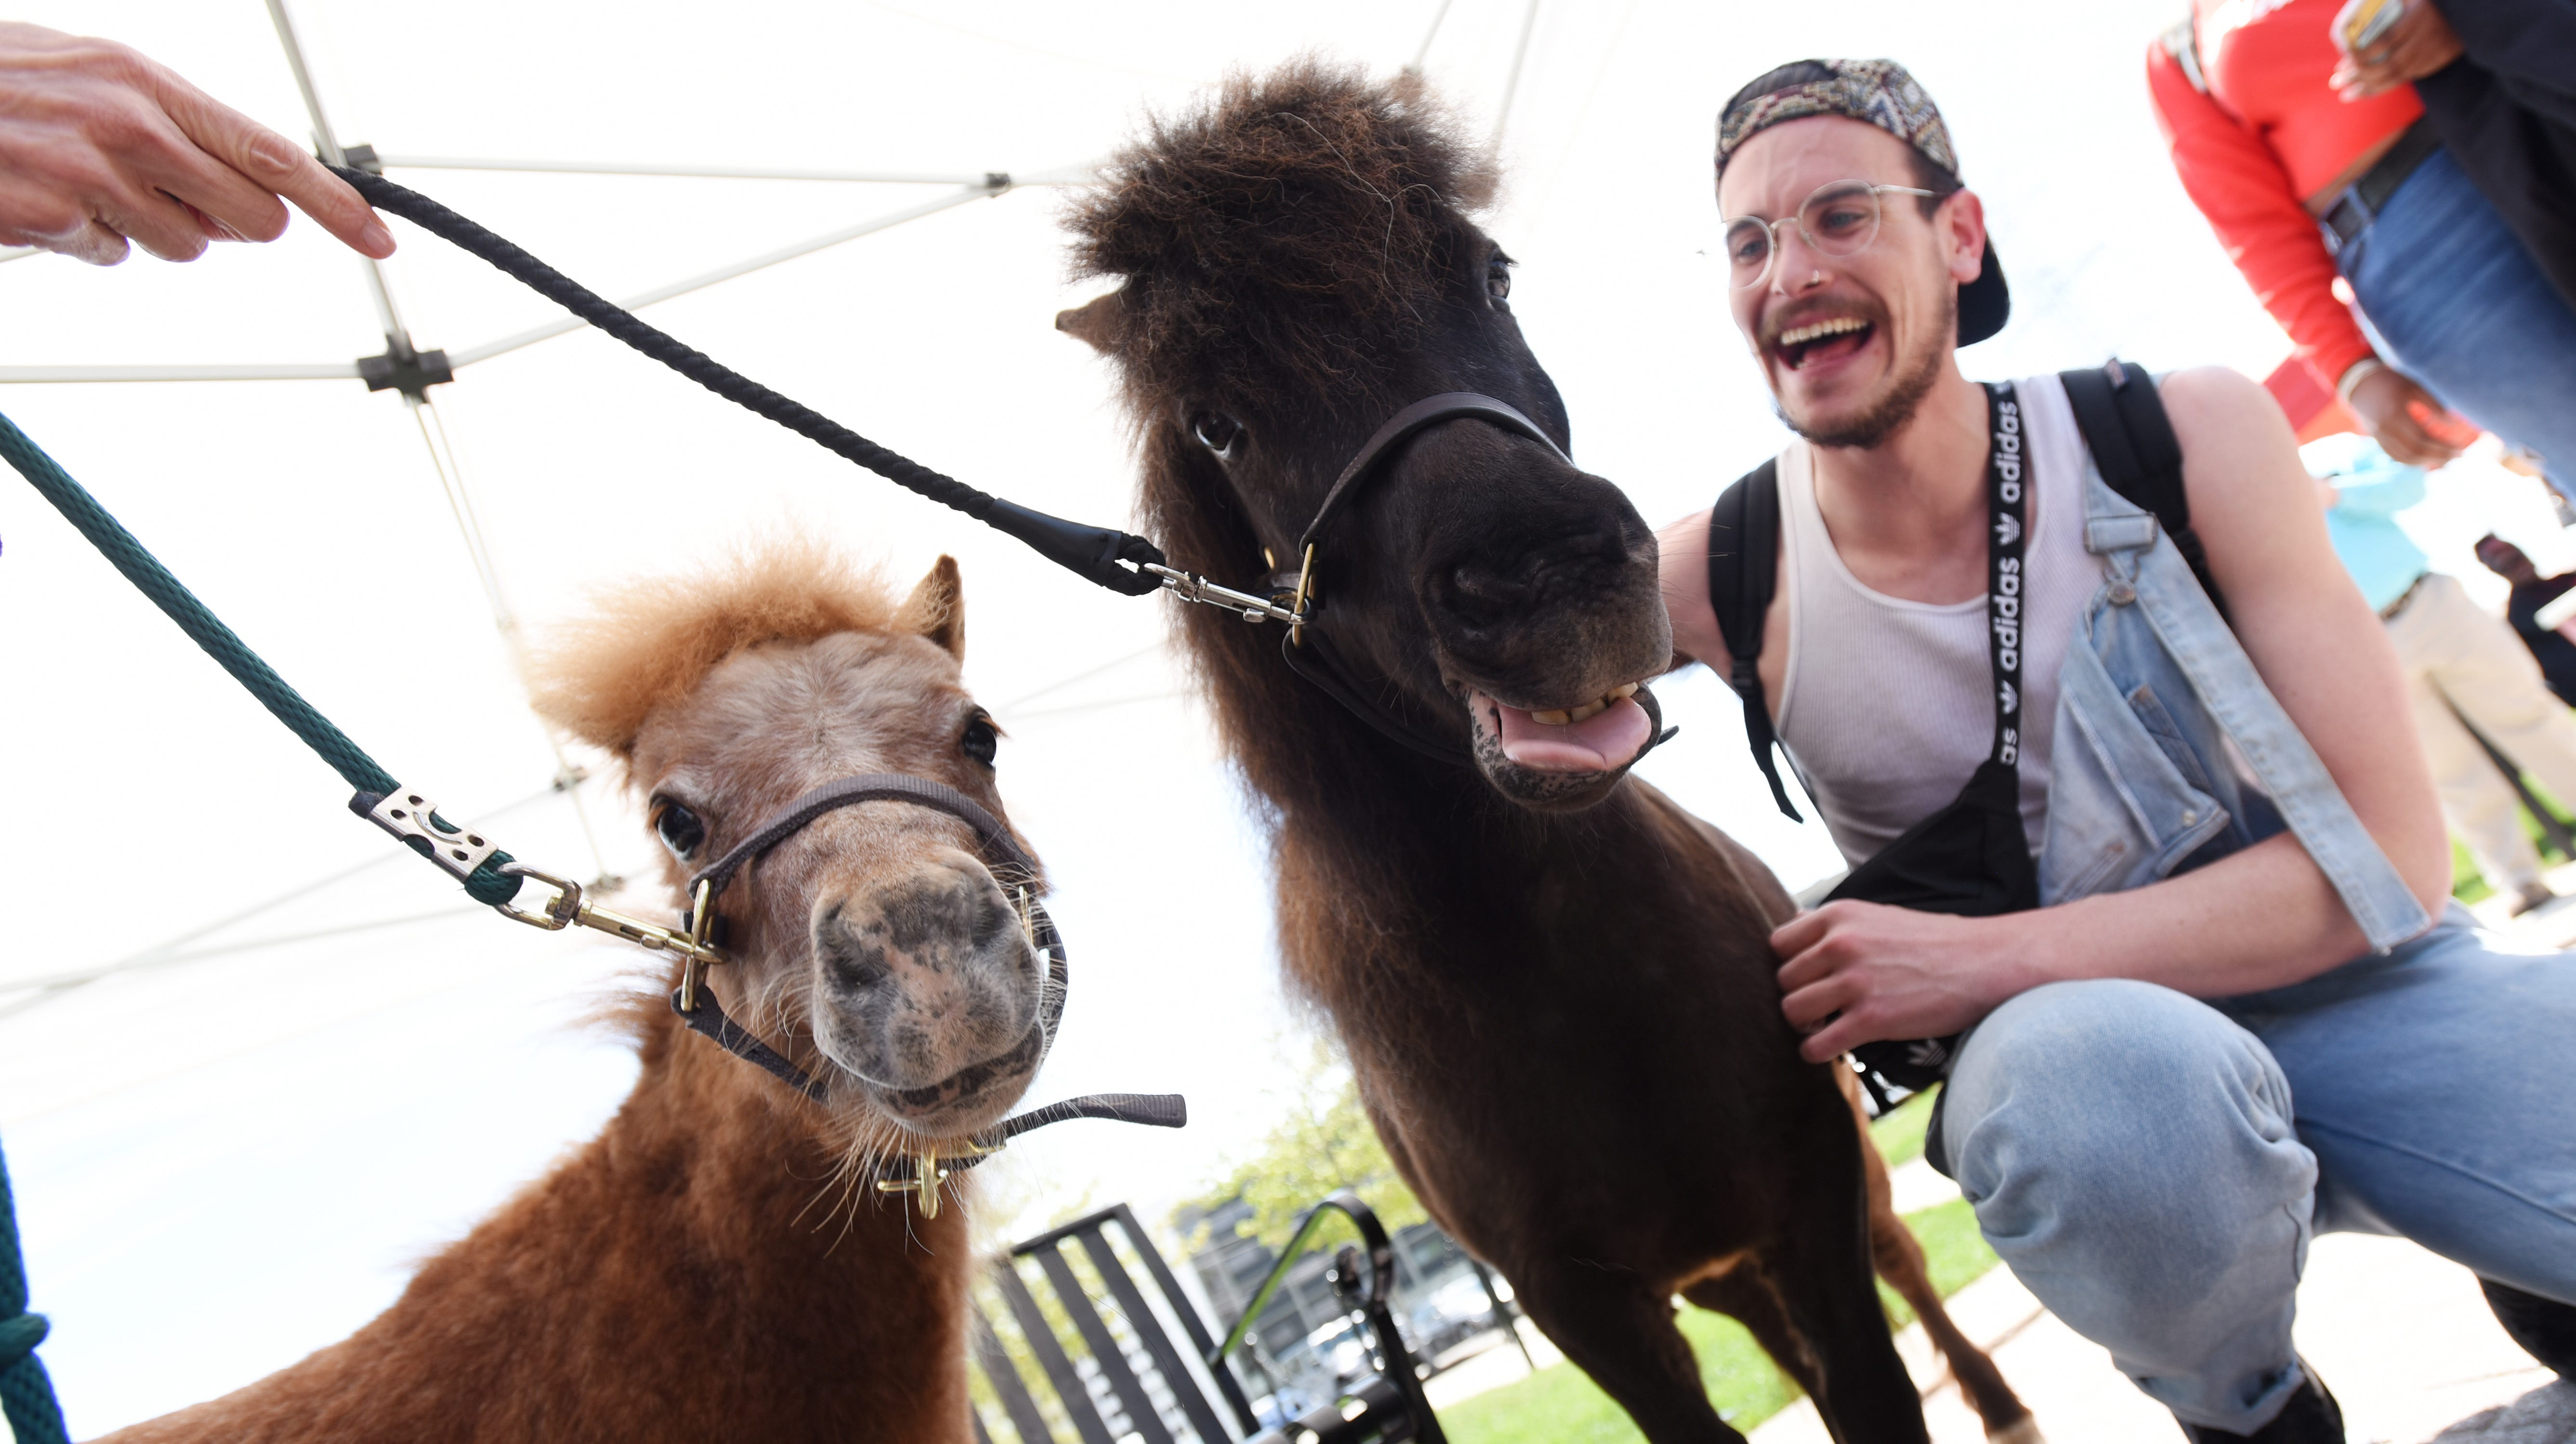 Mini horses come to Montclair State for finals week to help de-stress students